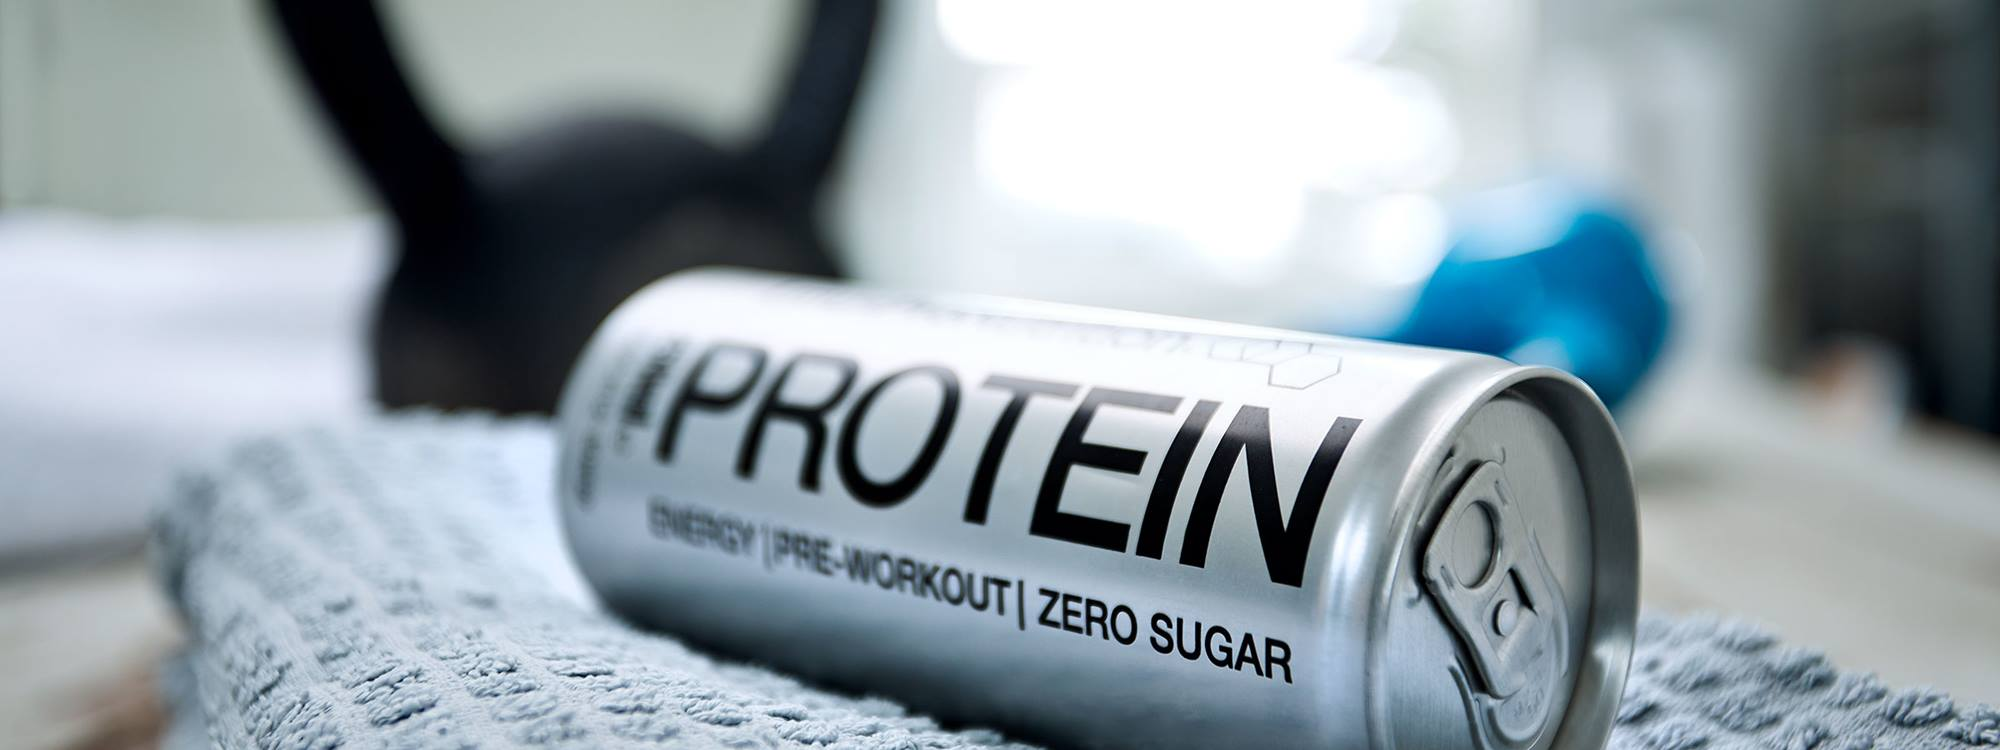 Whey protein in a sparkling format